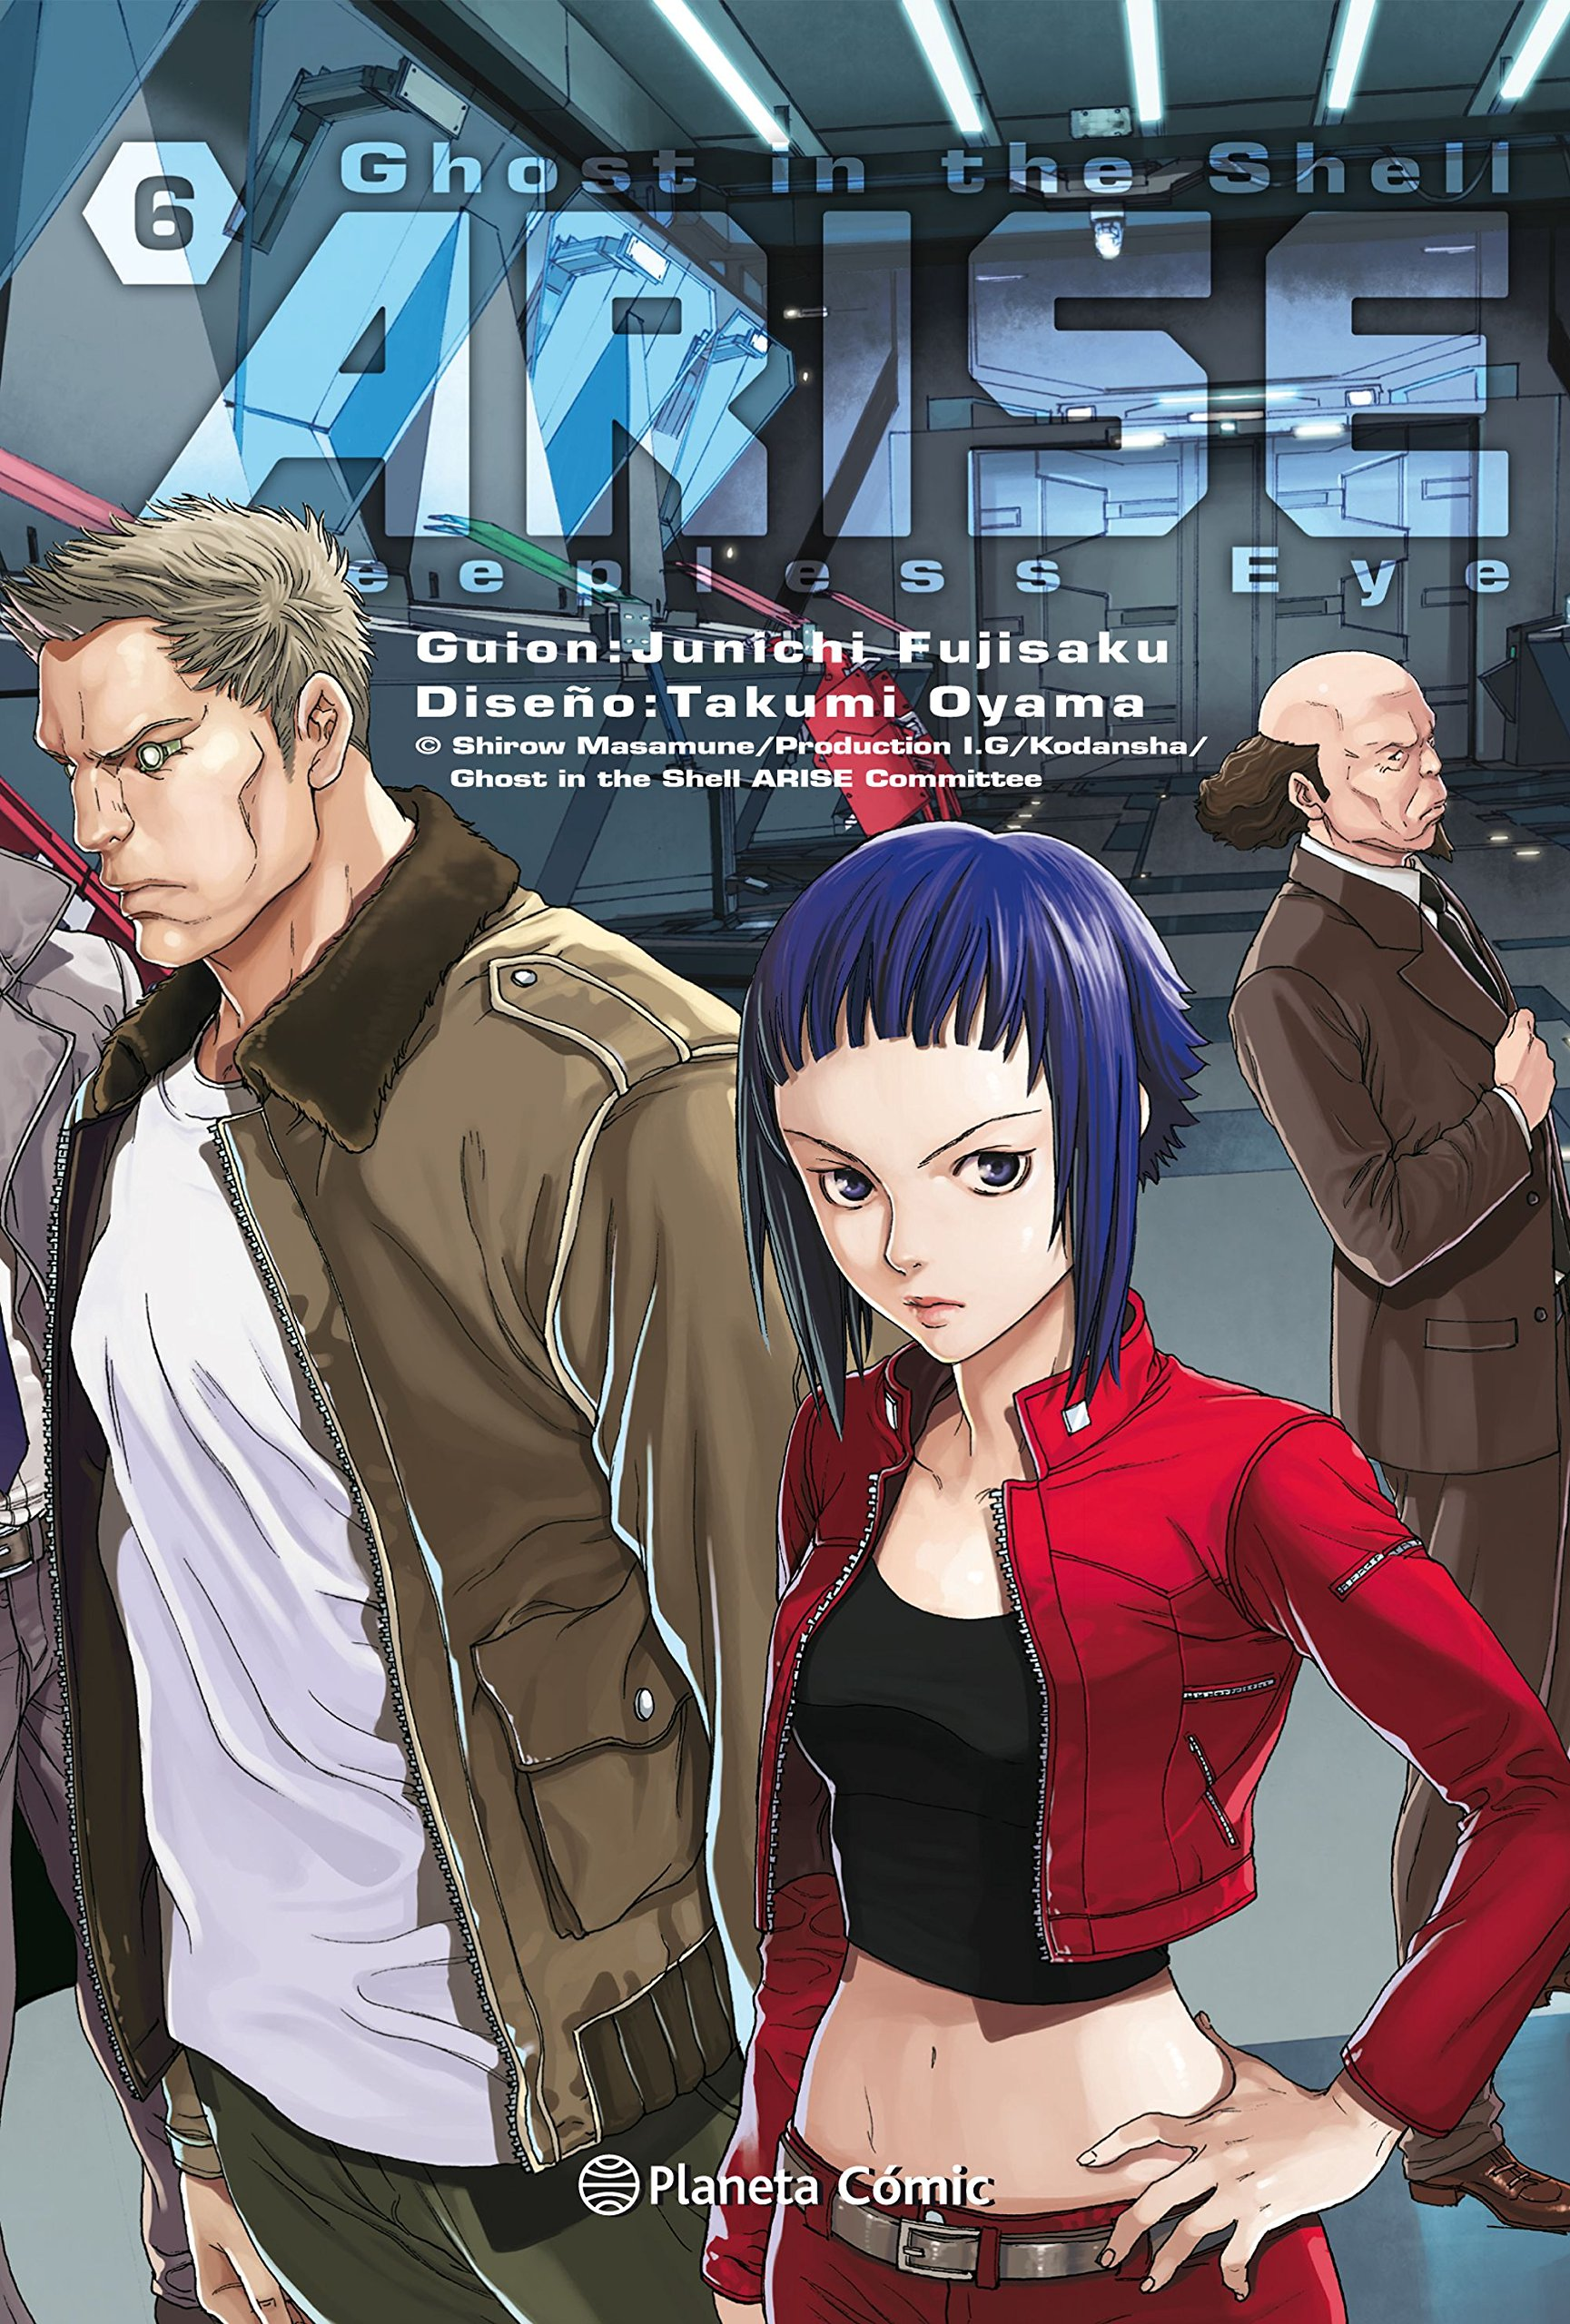 Ghost In The Shell Arise Nº 06 07 Manga Seinen Spanish Edition Oyama Takumi Daruma 9788491467540 Amazon Com Books